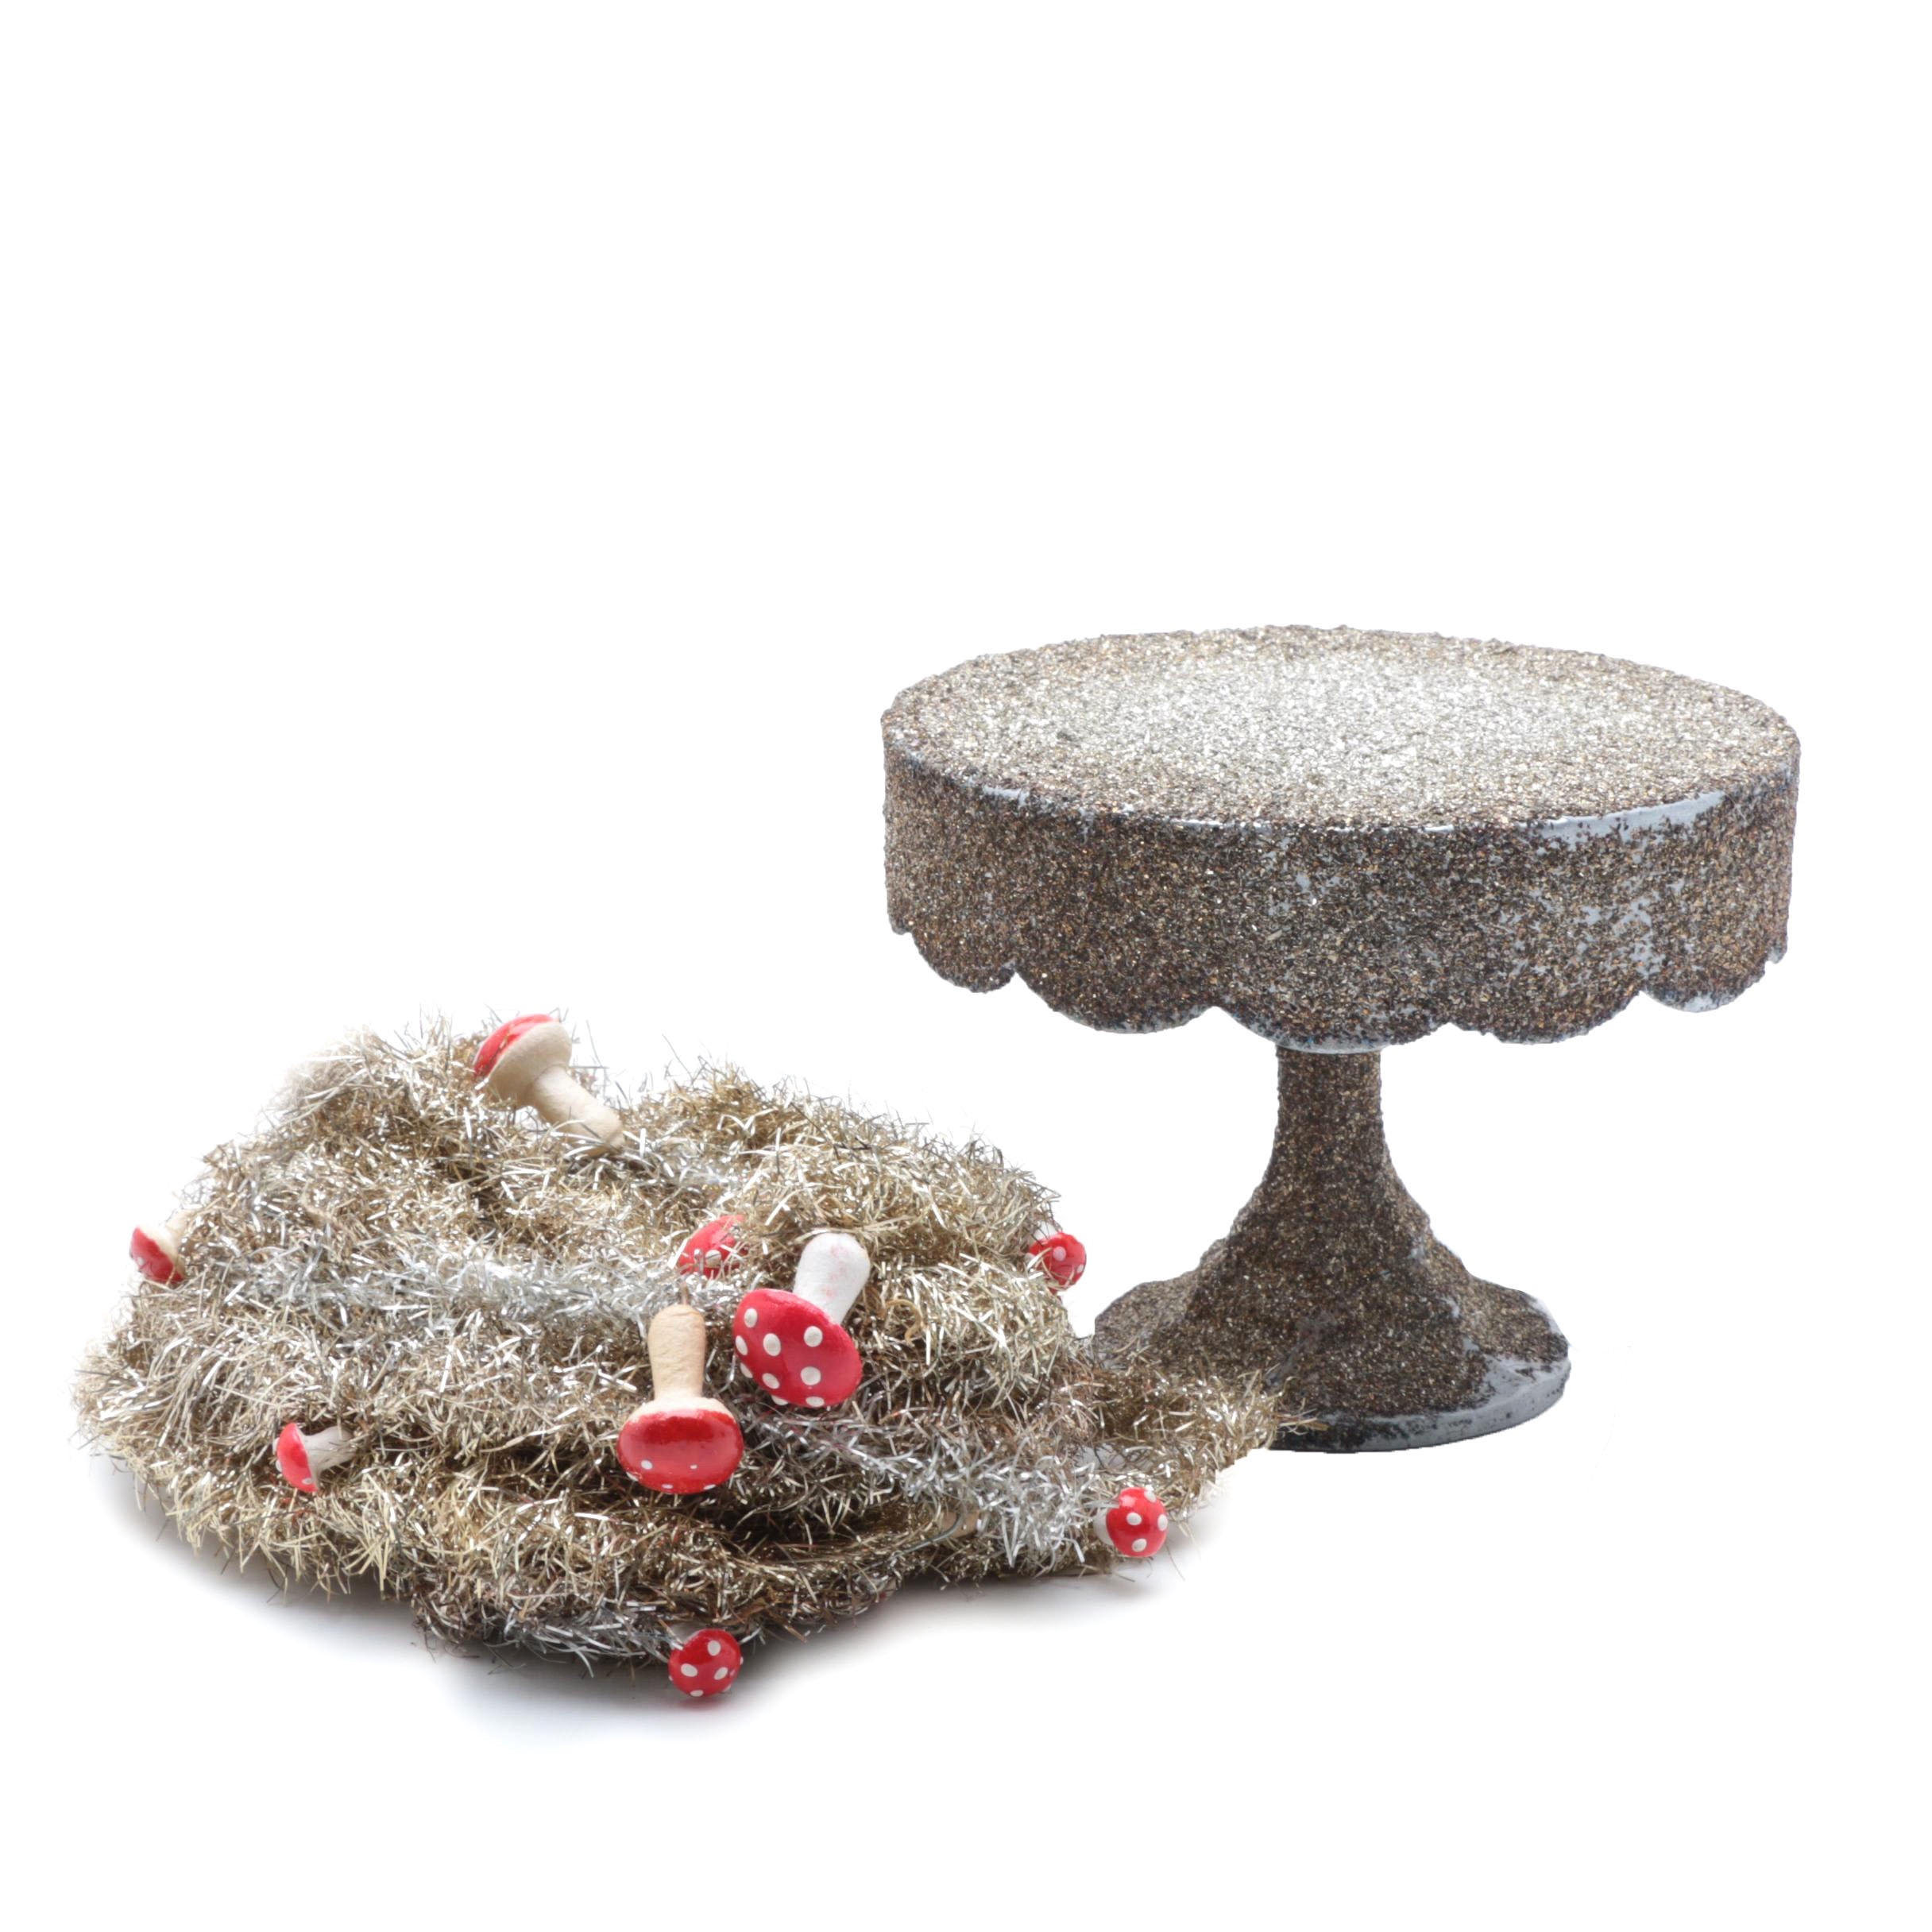 Vintage Gold and Silver Tinsel Embellished with Toad Stools and Display Stand